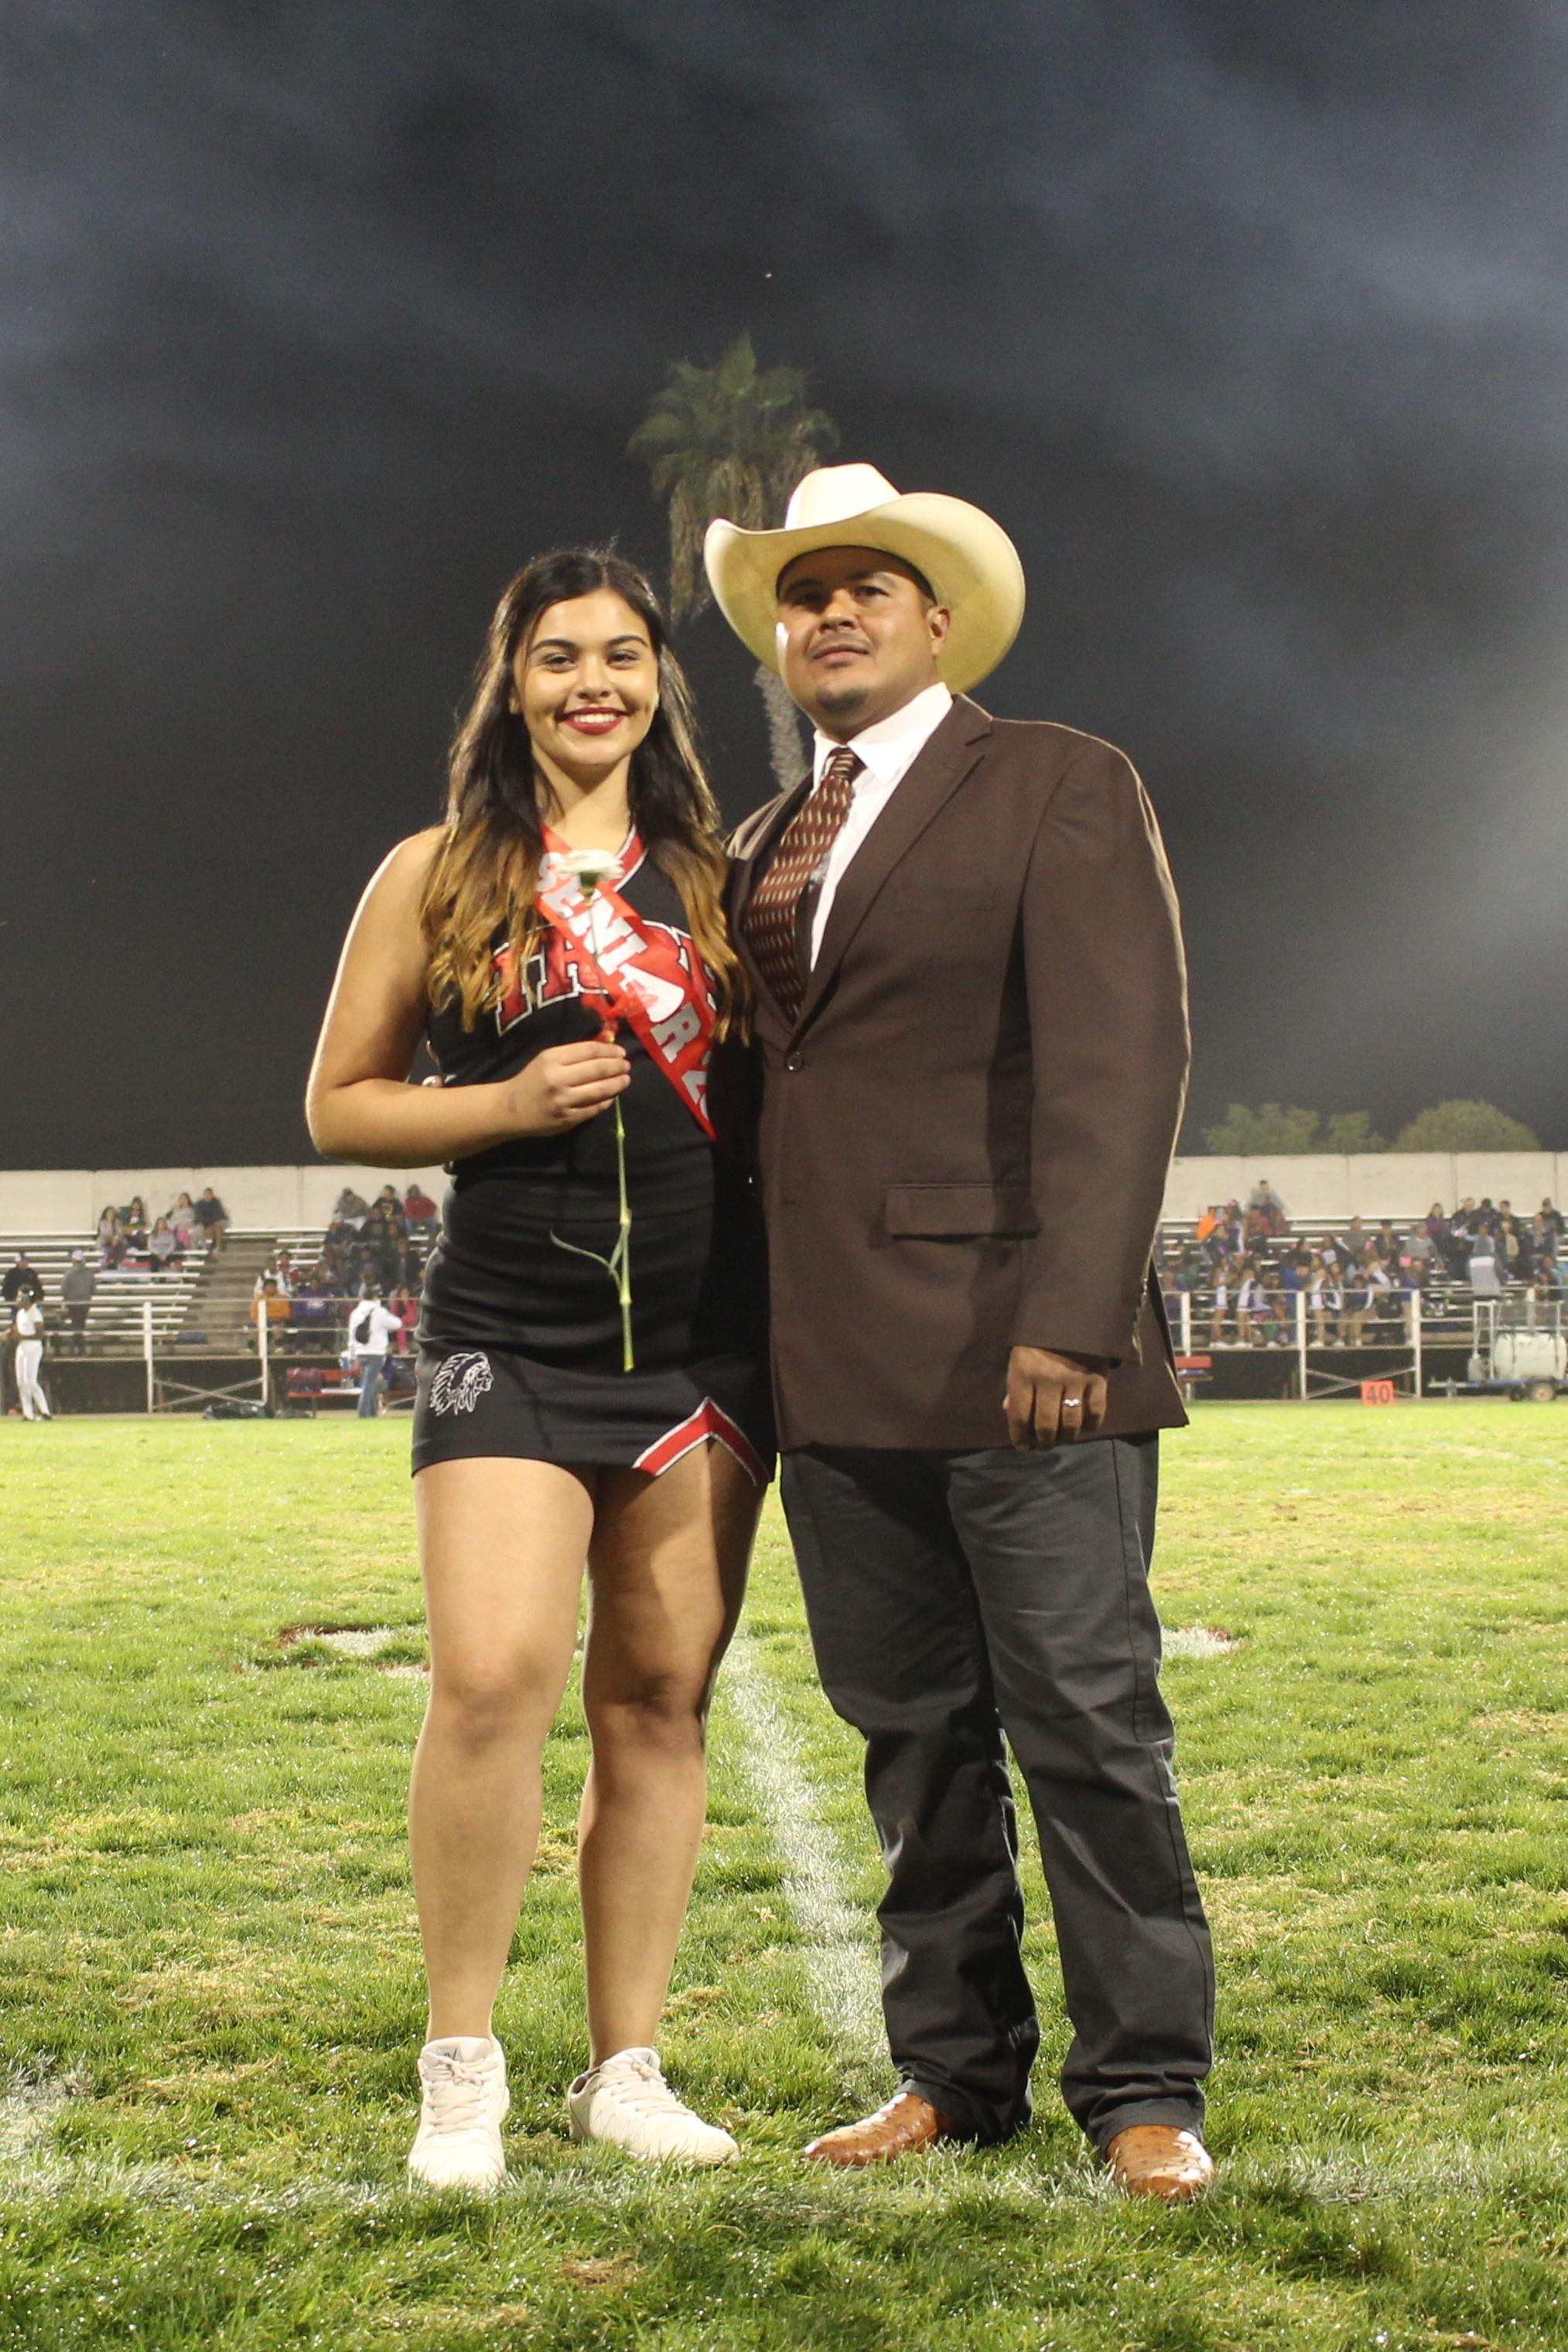 Senior cheerleader Fatima Benavides and her escort.